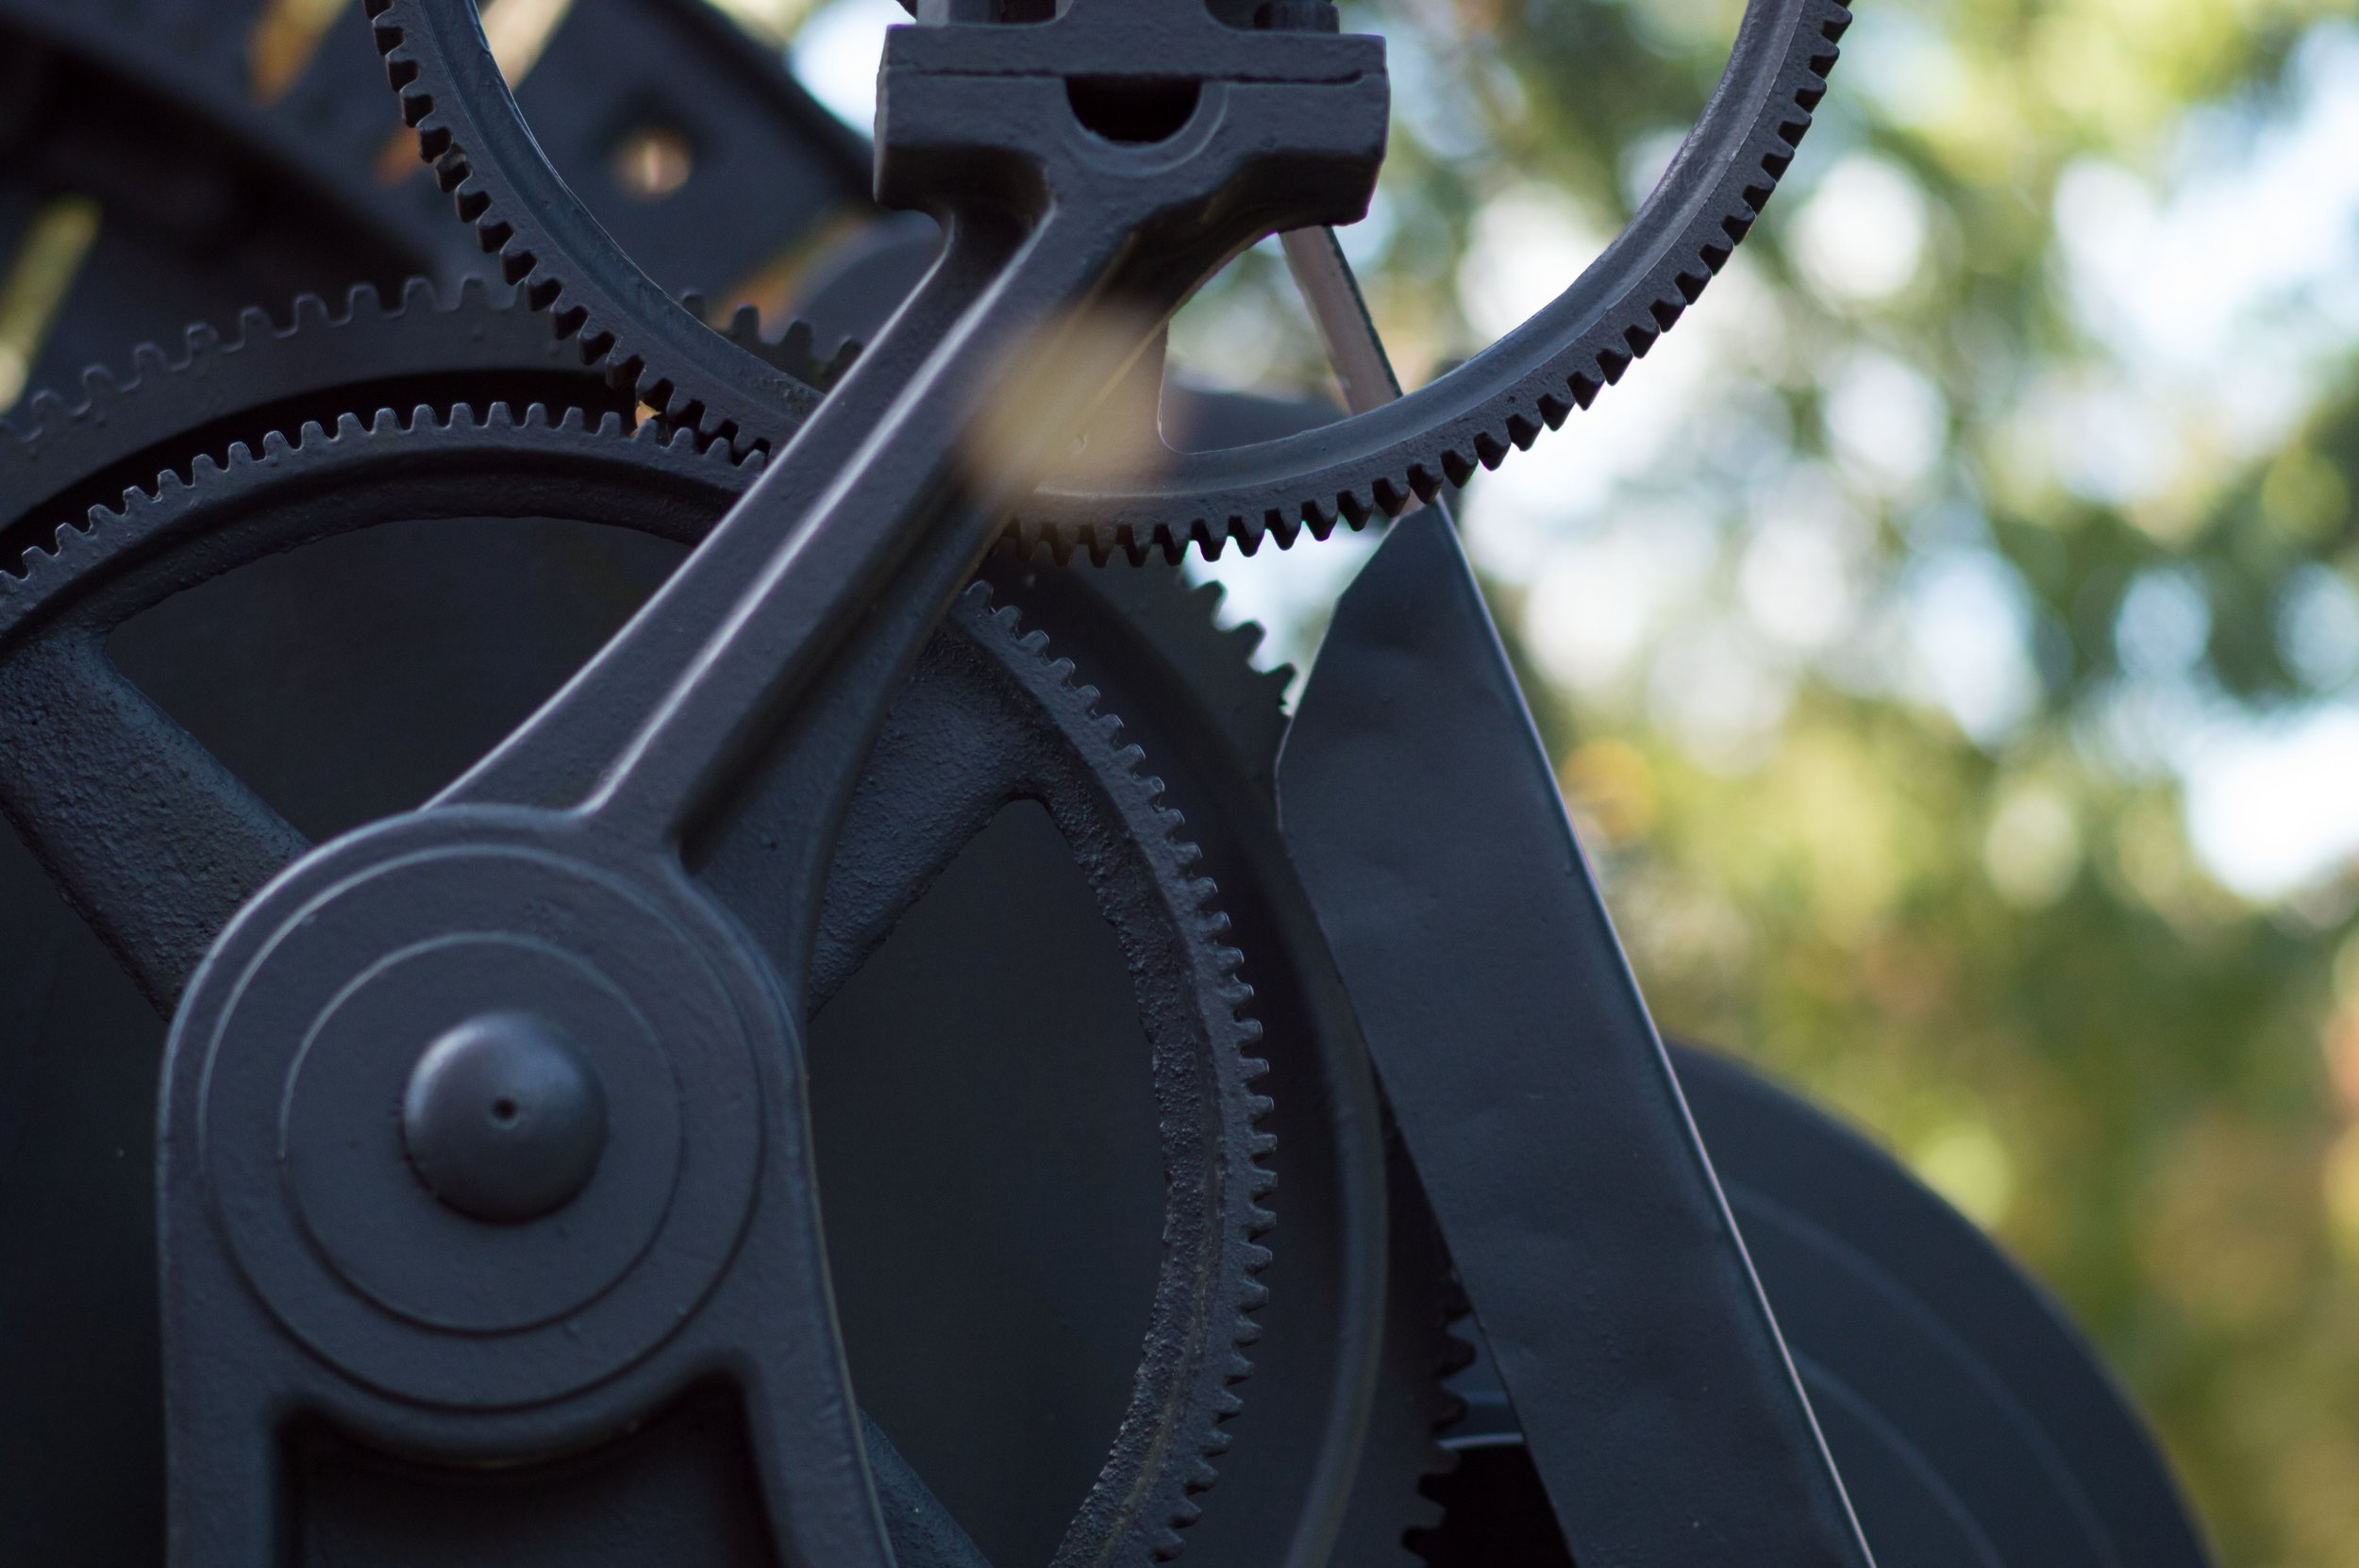 Gears have teeth and they fit together allowing the gears to turn